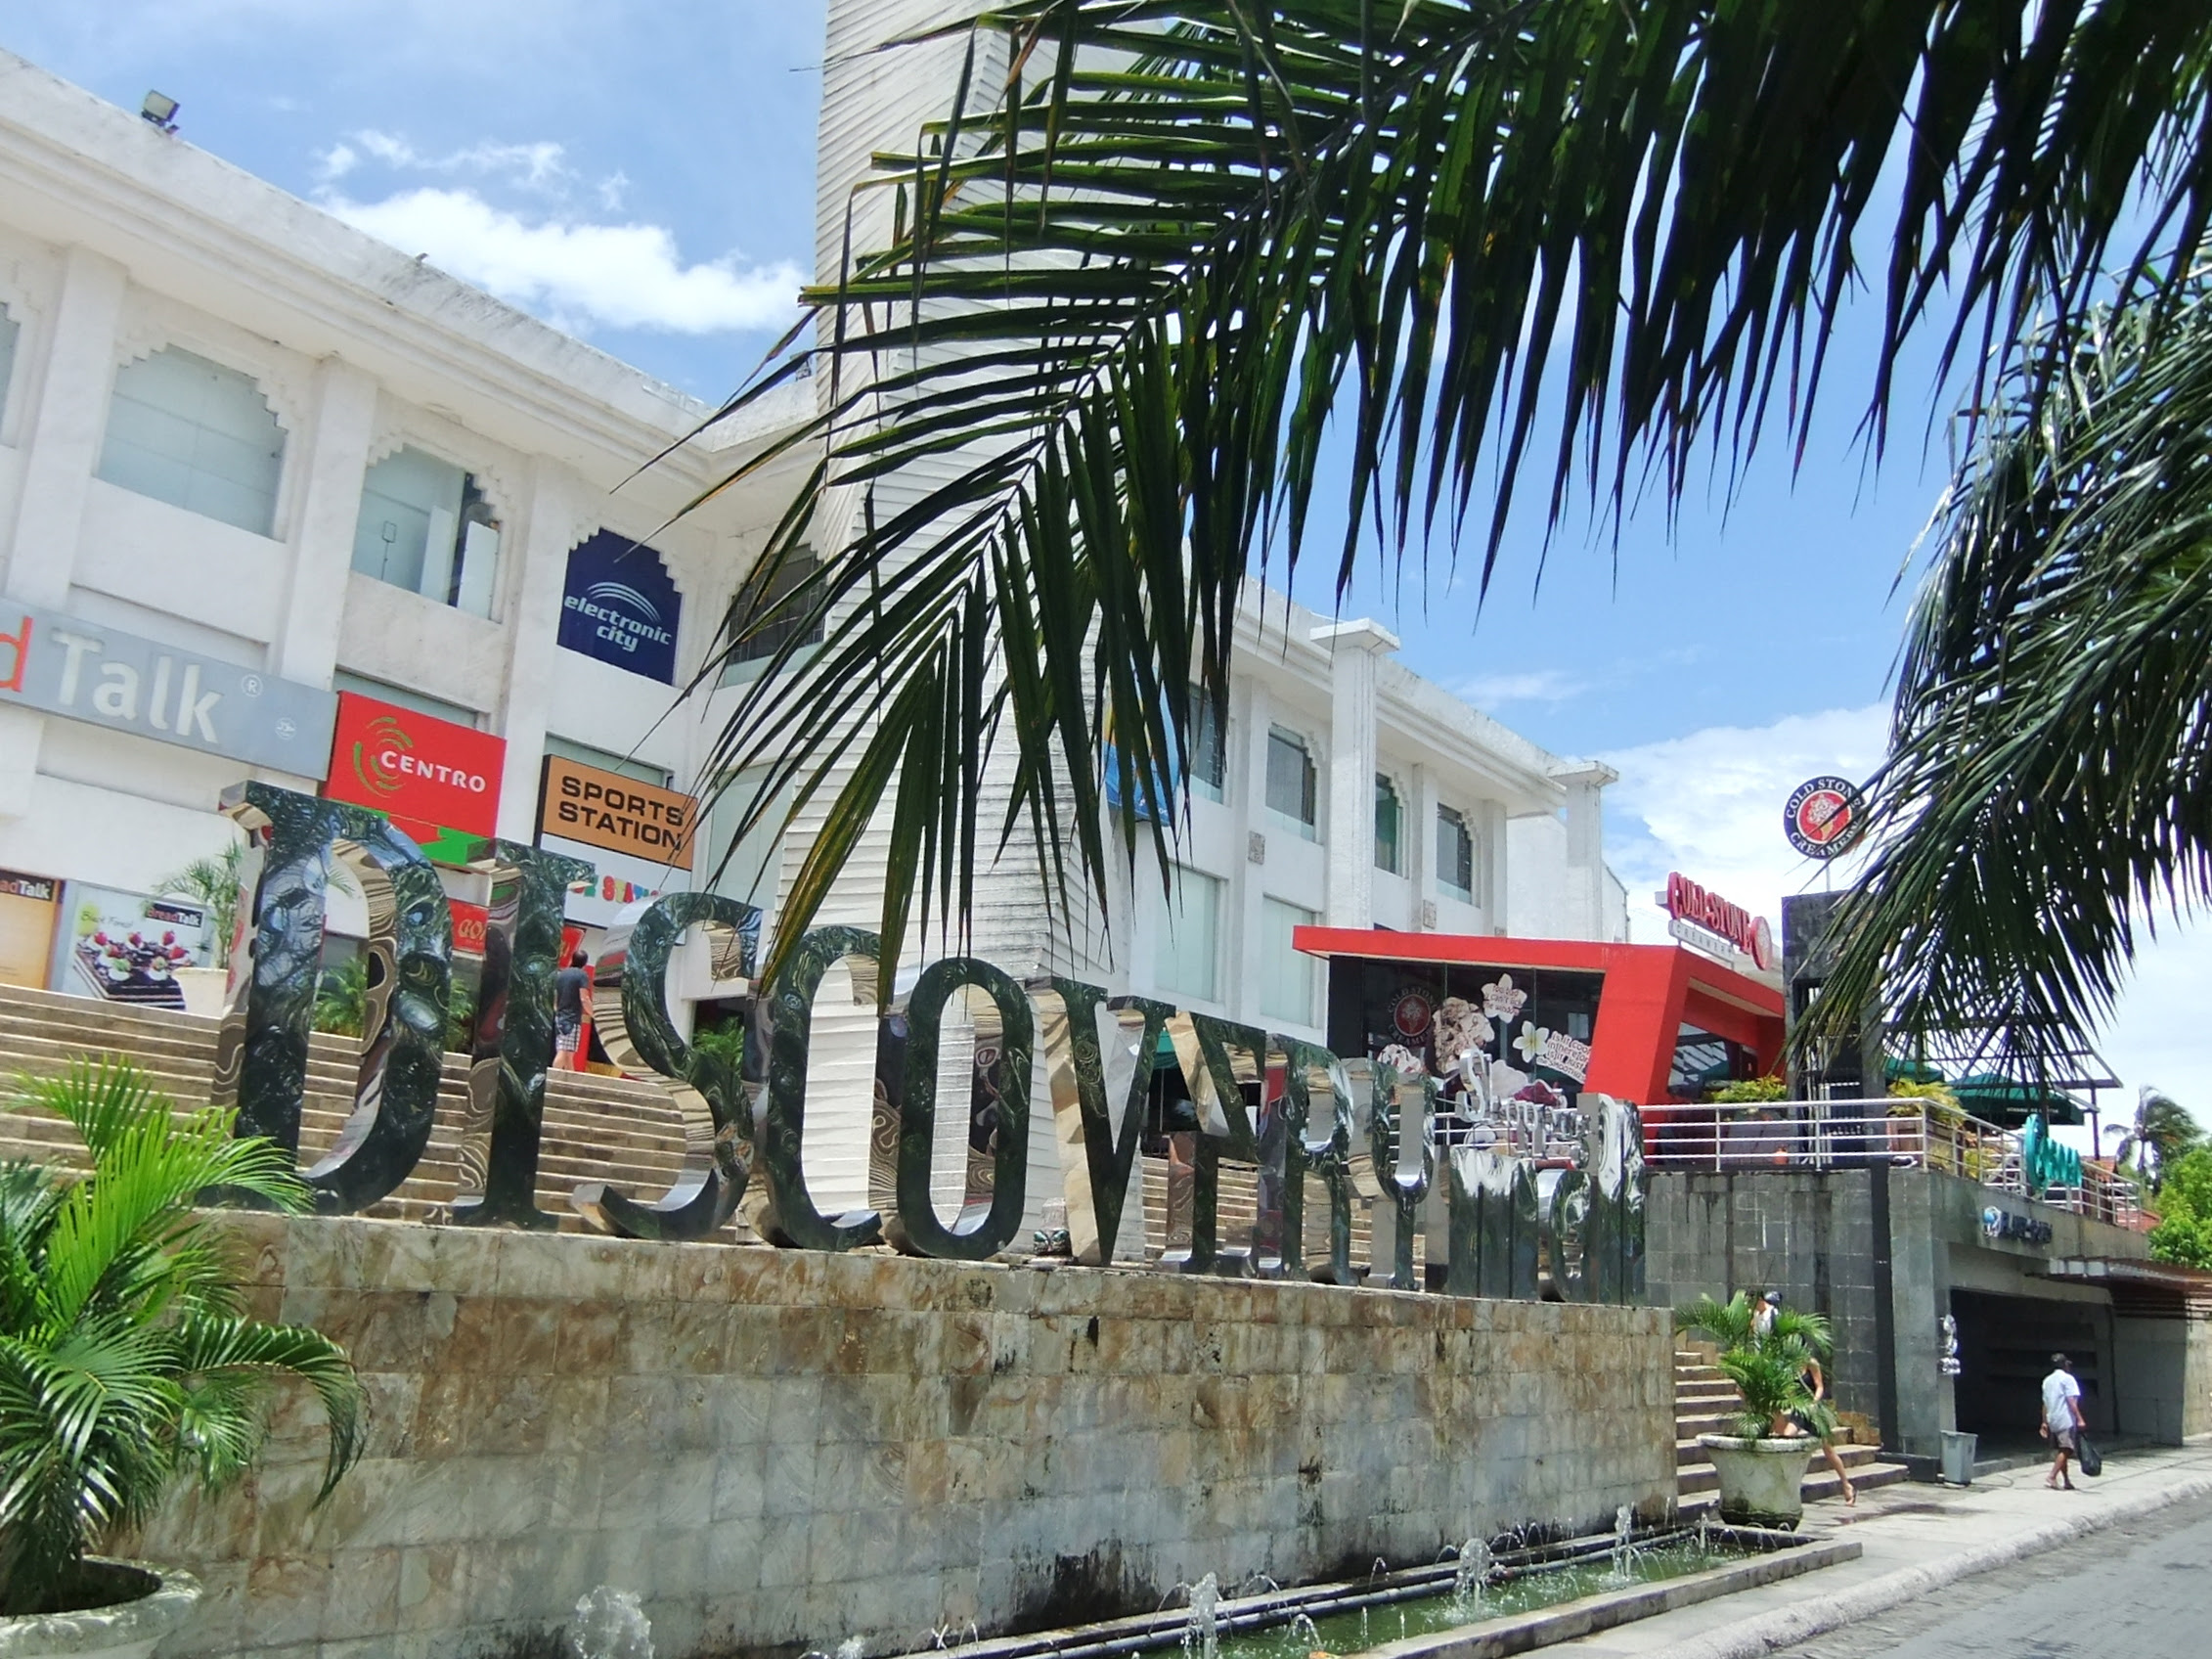 Discovery Shopping Mall Bali Map,Map of Discovery Shopping Mall Bali Indonesia,Tourist Attractions In Bali,Things to do in Bali Island,Discovery Shopping Mall Bali Indonesia accommodation destinations attractions hotels map reviews photos pictures